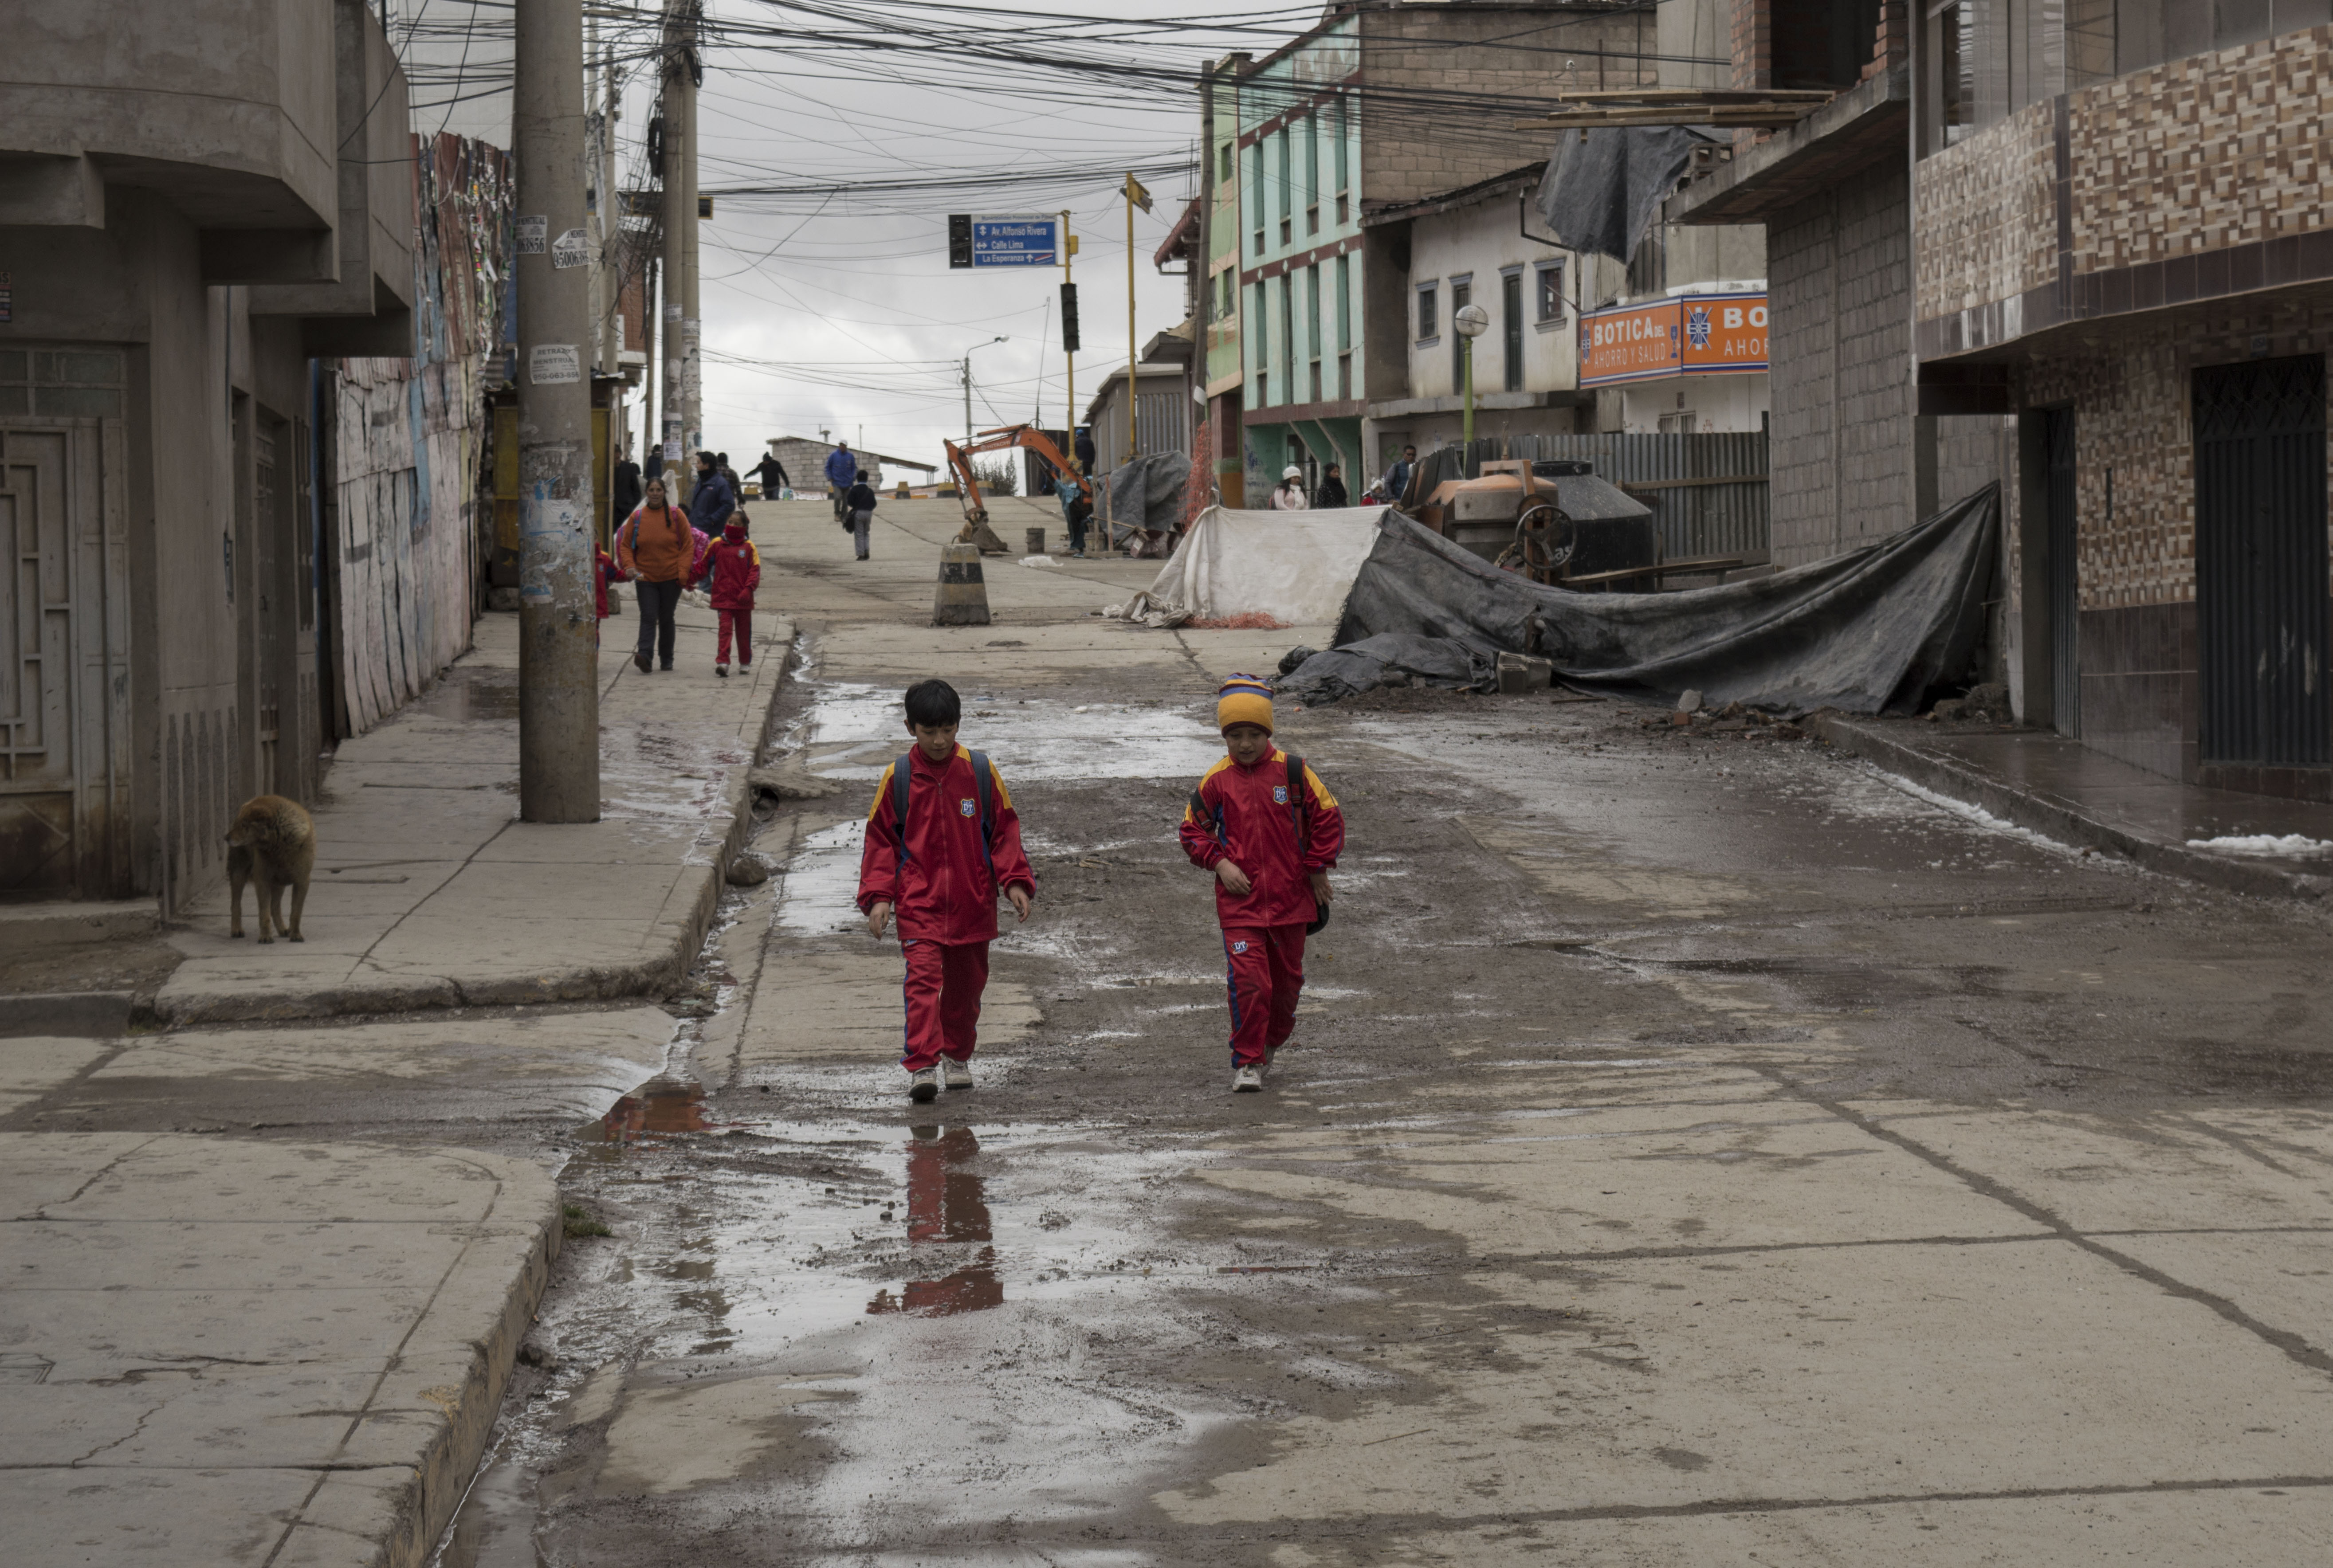 Local authorities say heavy-metal pollution has caused mental retardation, genetic malformations and brain damage, which ultimately leads to death if untreated, according to Peru's environmental regulator.